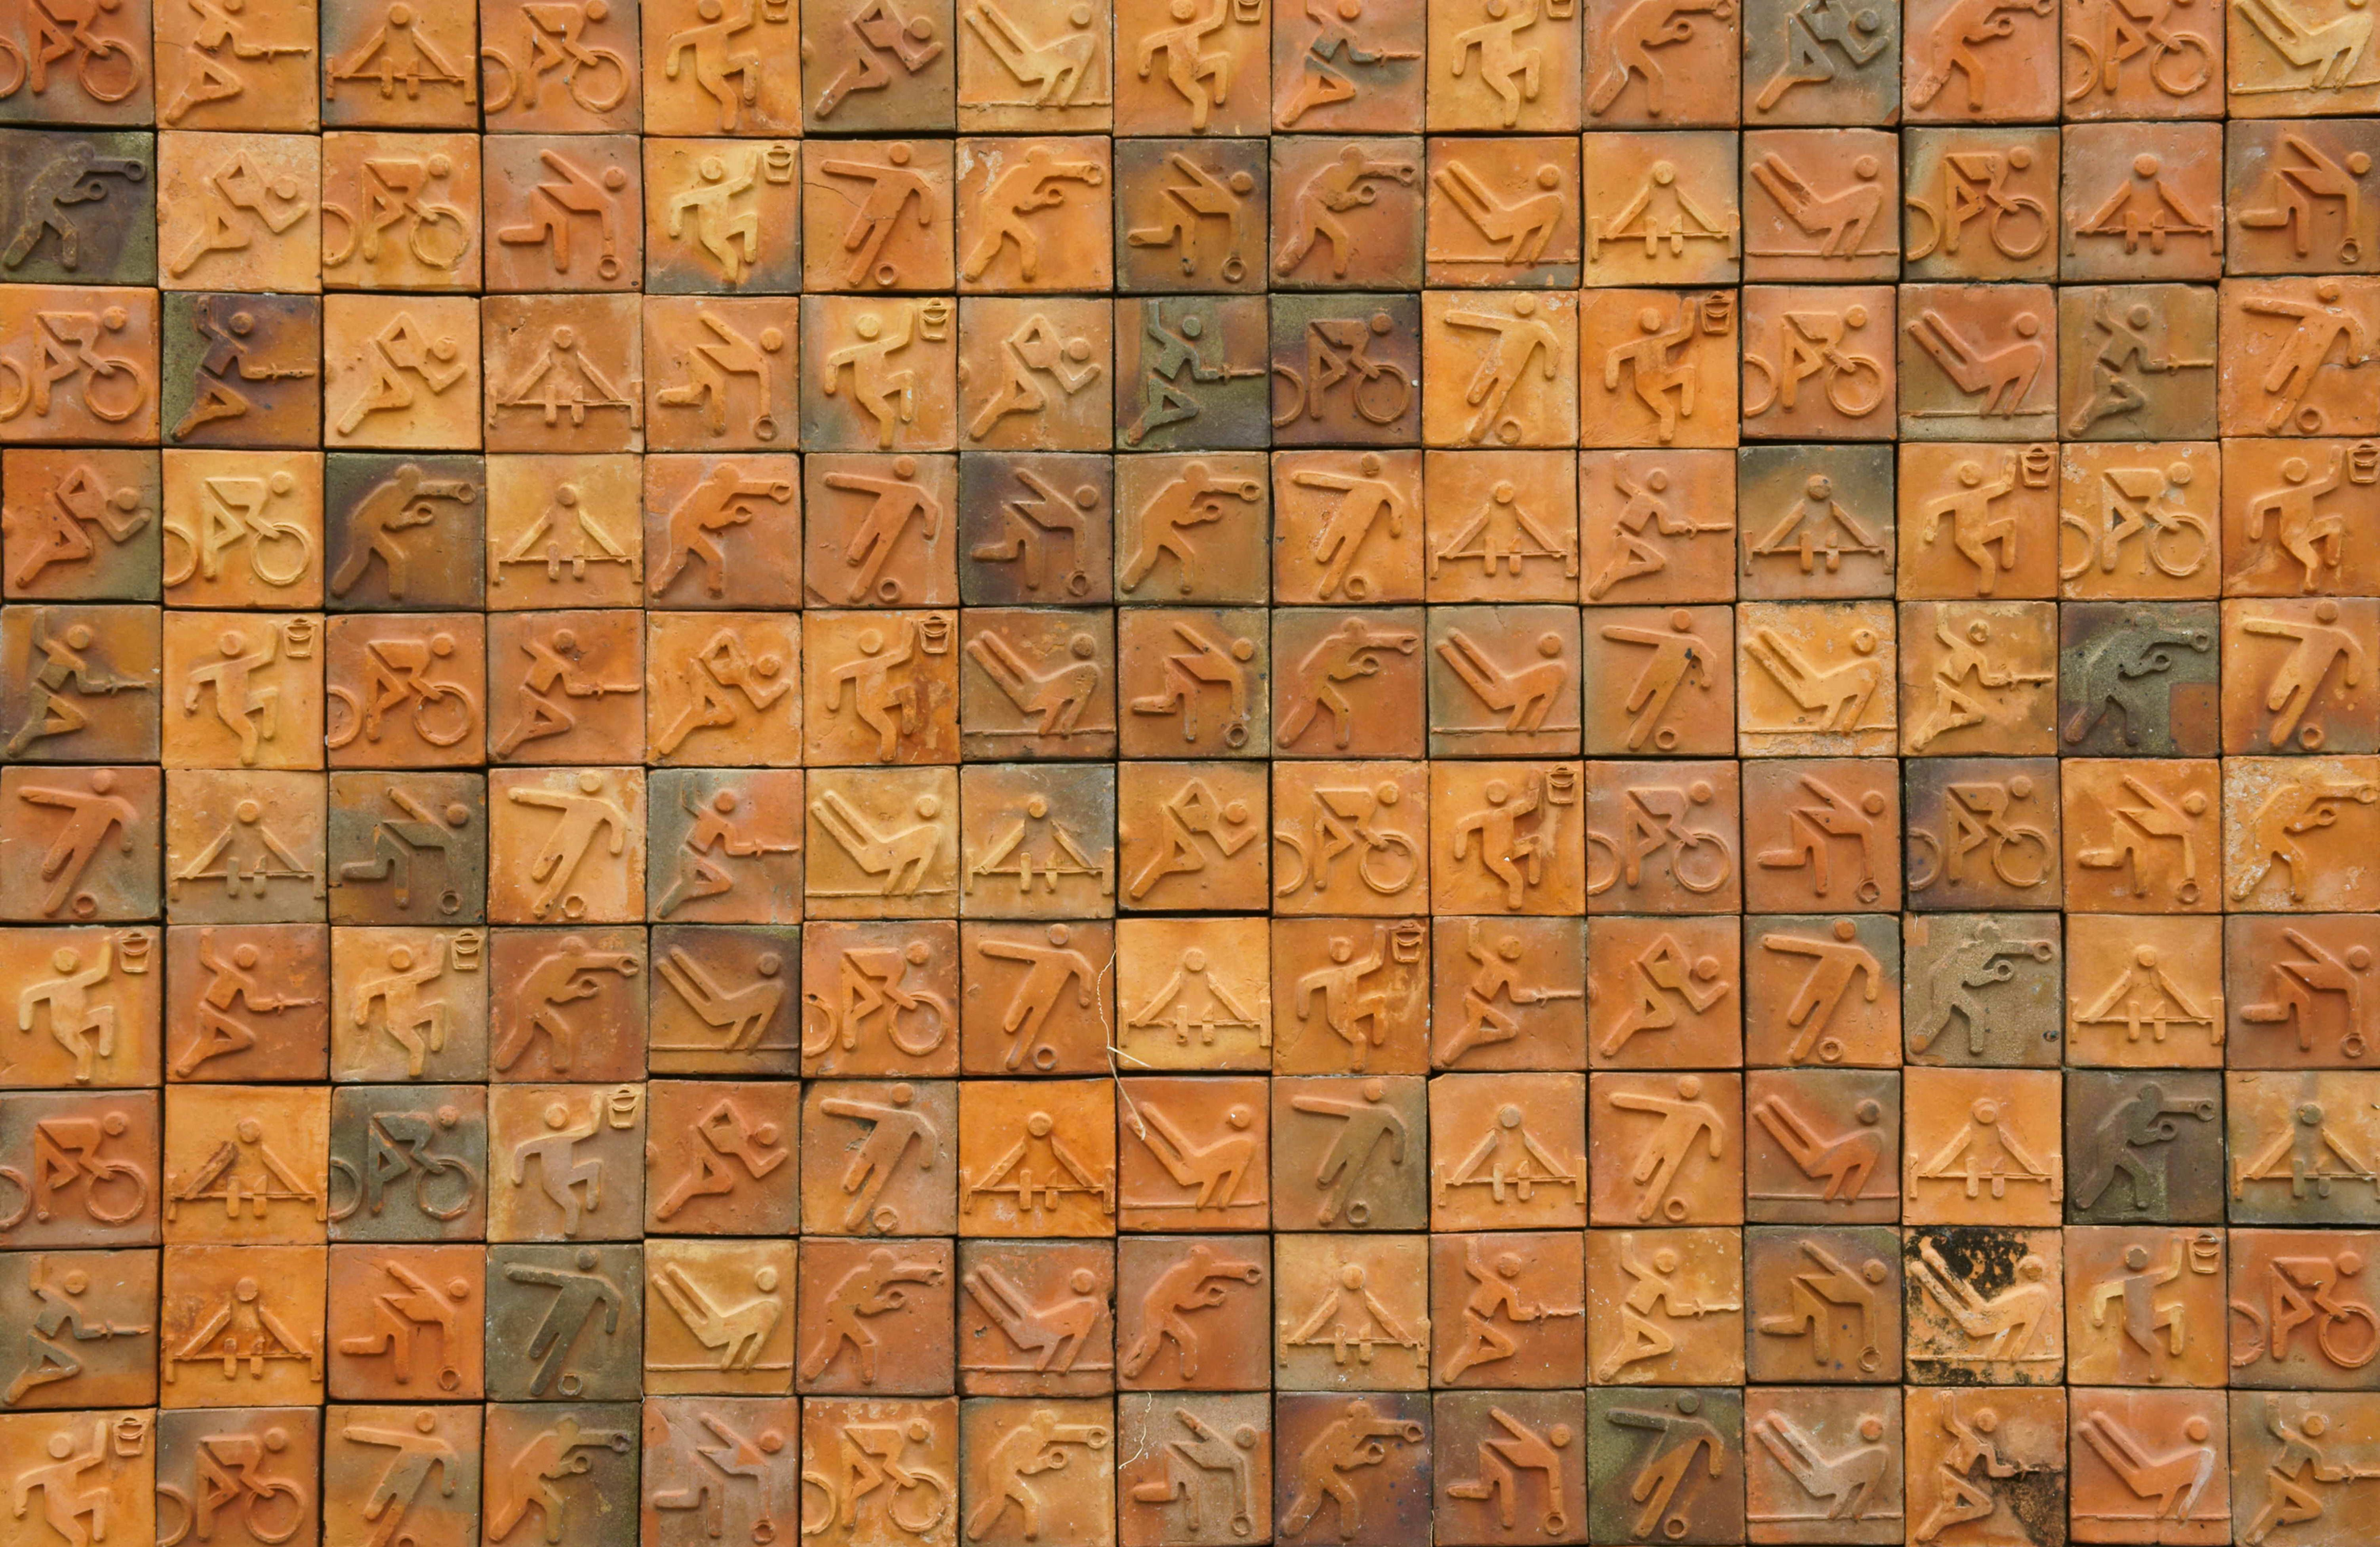 Free Download Textures Google Search Backgrounds